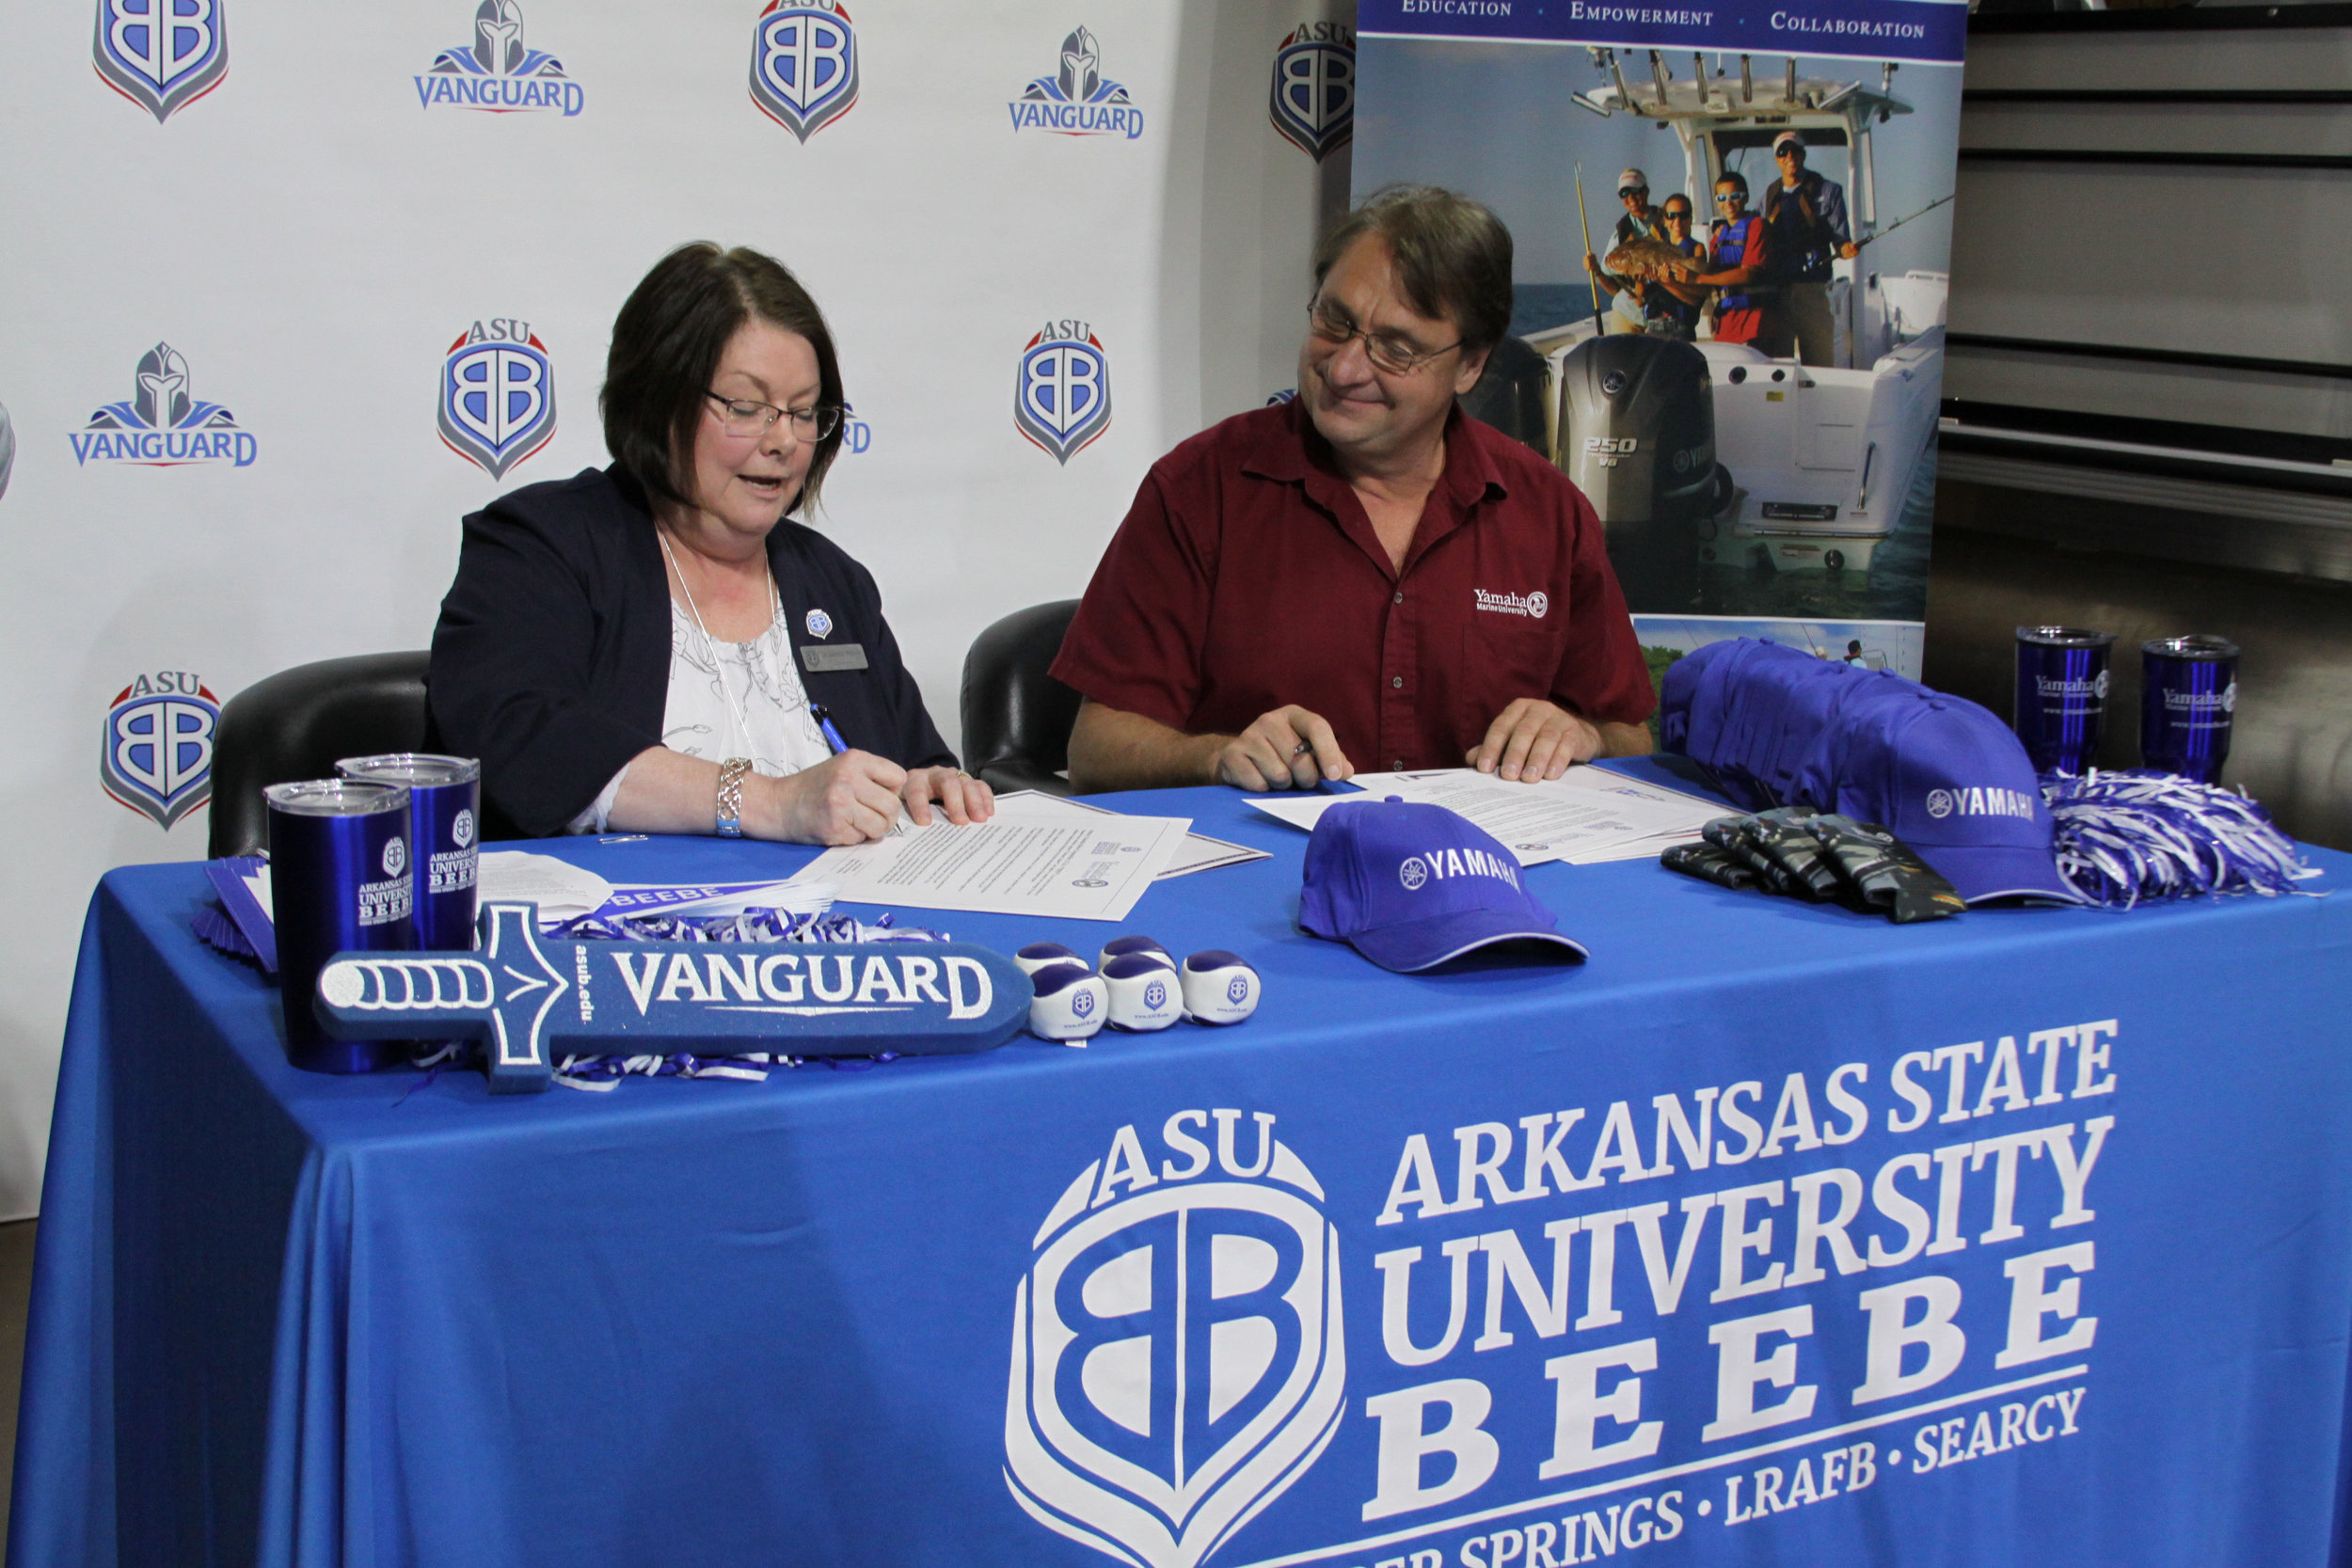 Dr. Jennifer Methvin, chancellor of ASU-Beebe and Steve Maciosek, regional service manager for Yamaha Motor Corporation, U.S.A. sign the agreement establishing the Yamaha Outboard Service Technician training program at ASU-Beebe' s Searcy campus on Wednesday, July 17, 2019. The program will create a career track to become a Yamaha certified Marine Master Service Technician.   (Photo courtesy ASU-Beebe)  .